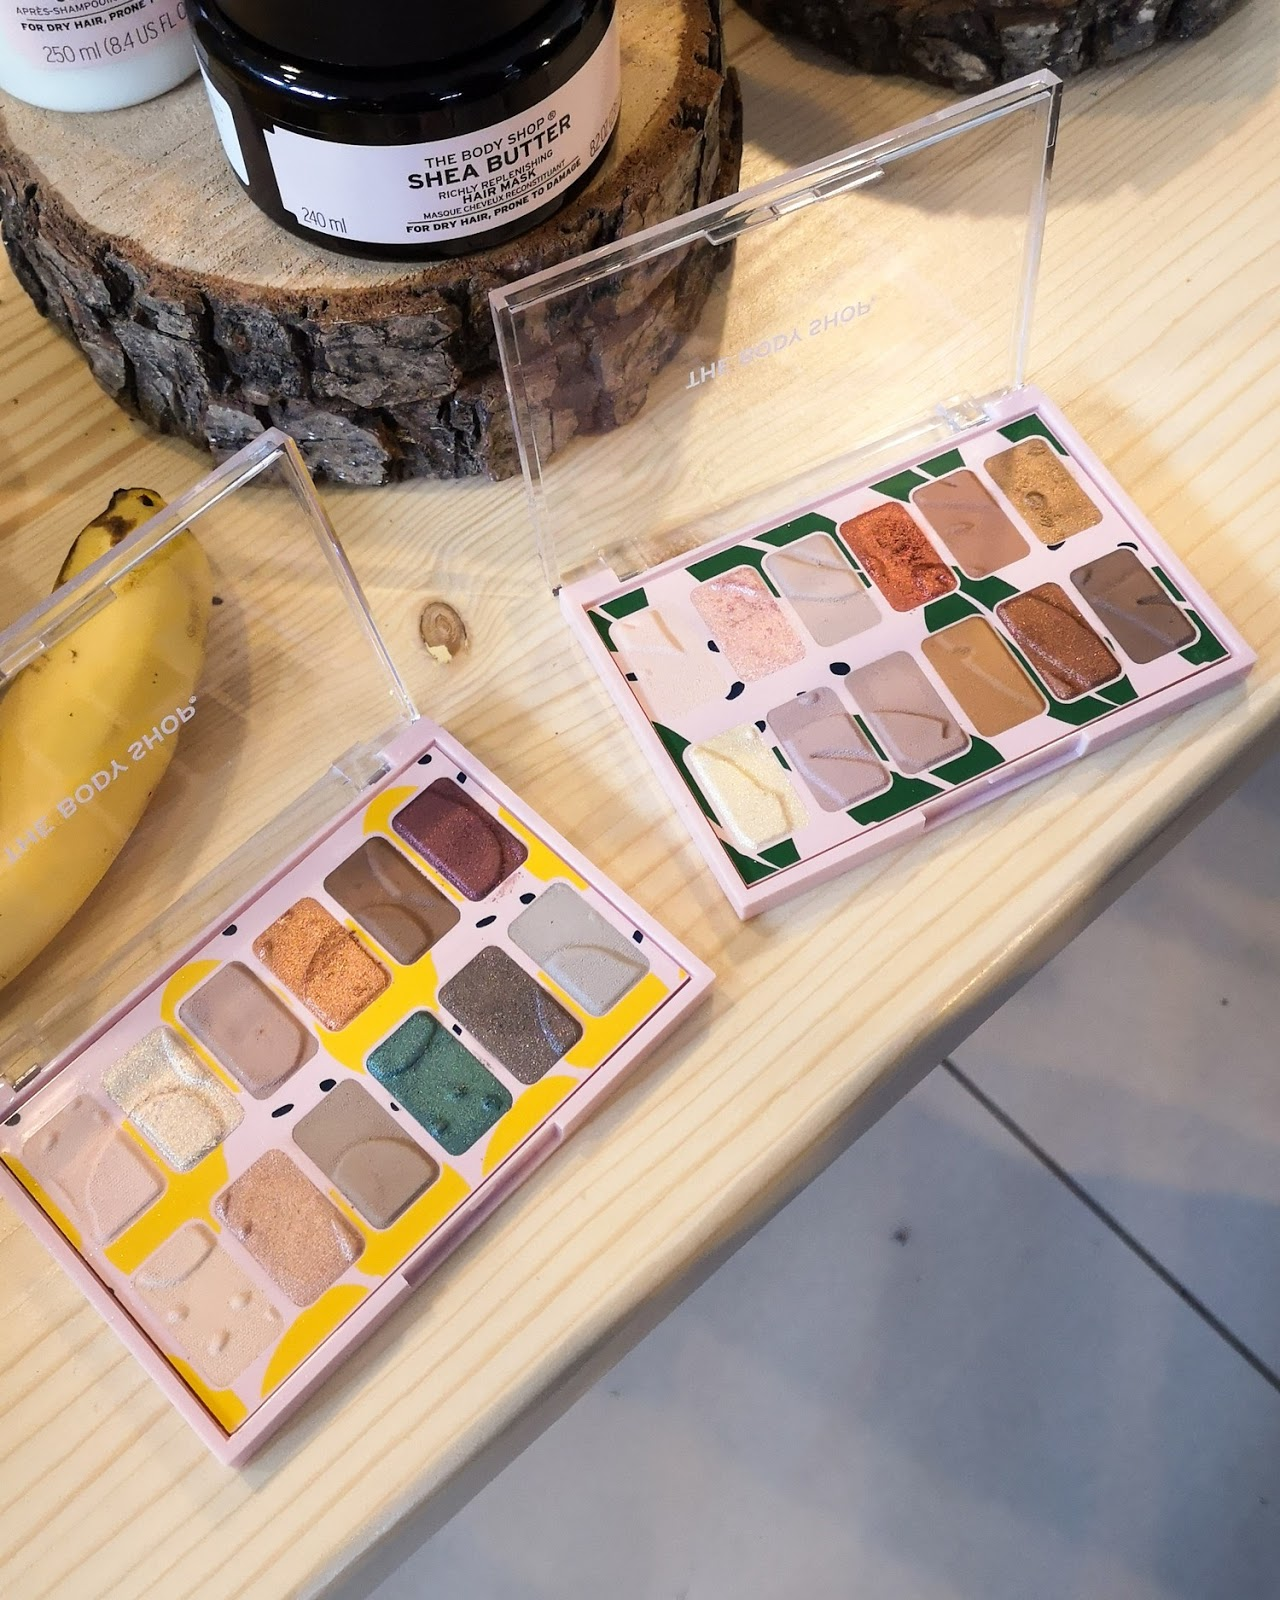 The Body Shop Blogger Event (New Spring 2019 Products)